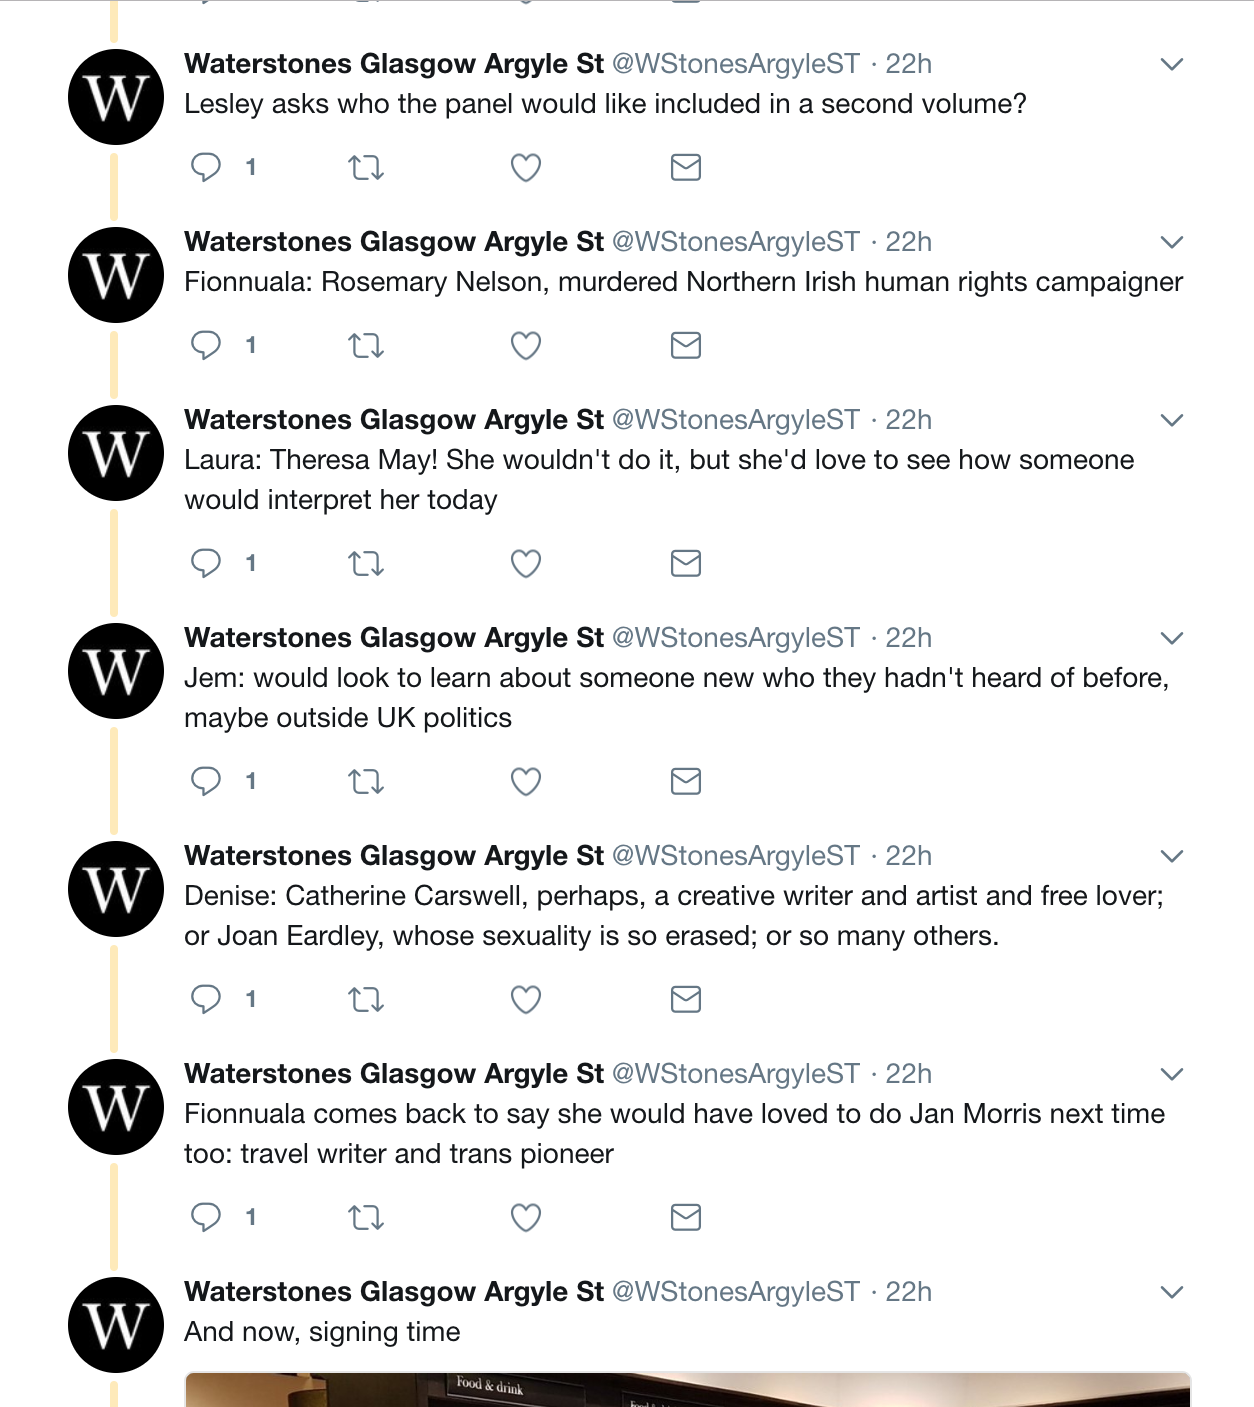 Live Twitter Coverage from Glasgow Waterstones